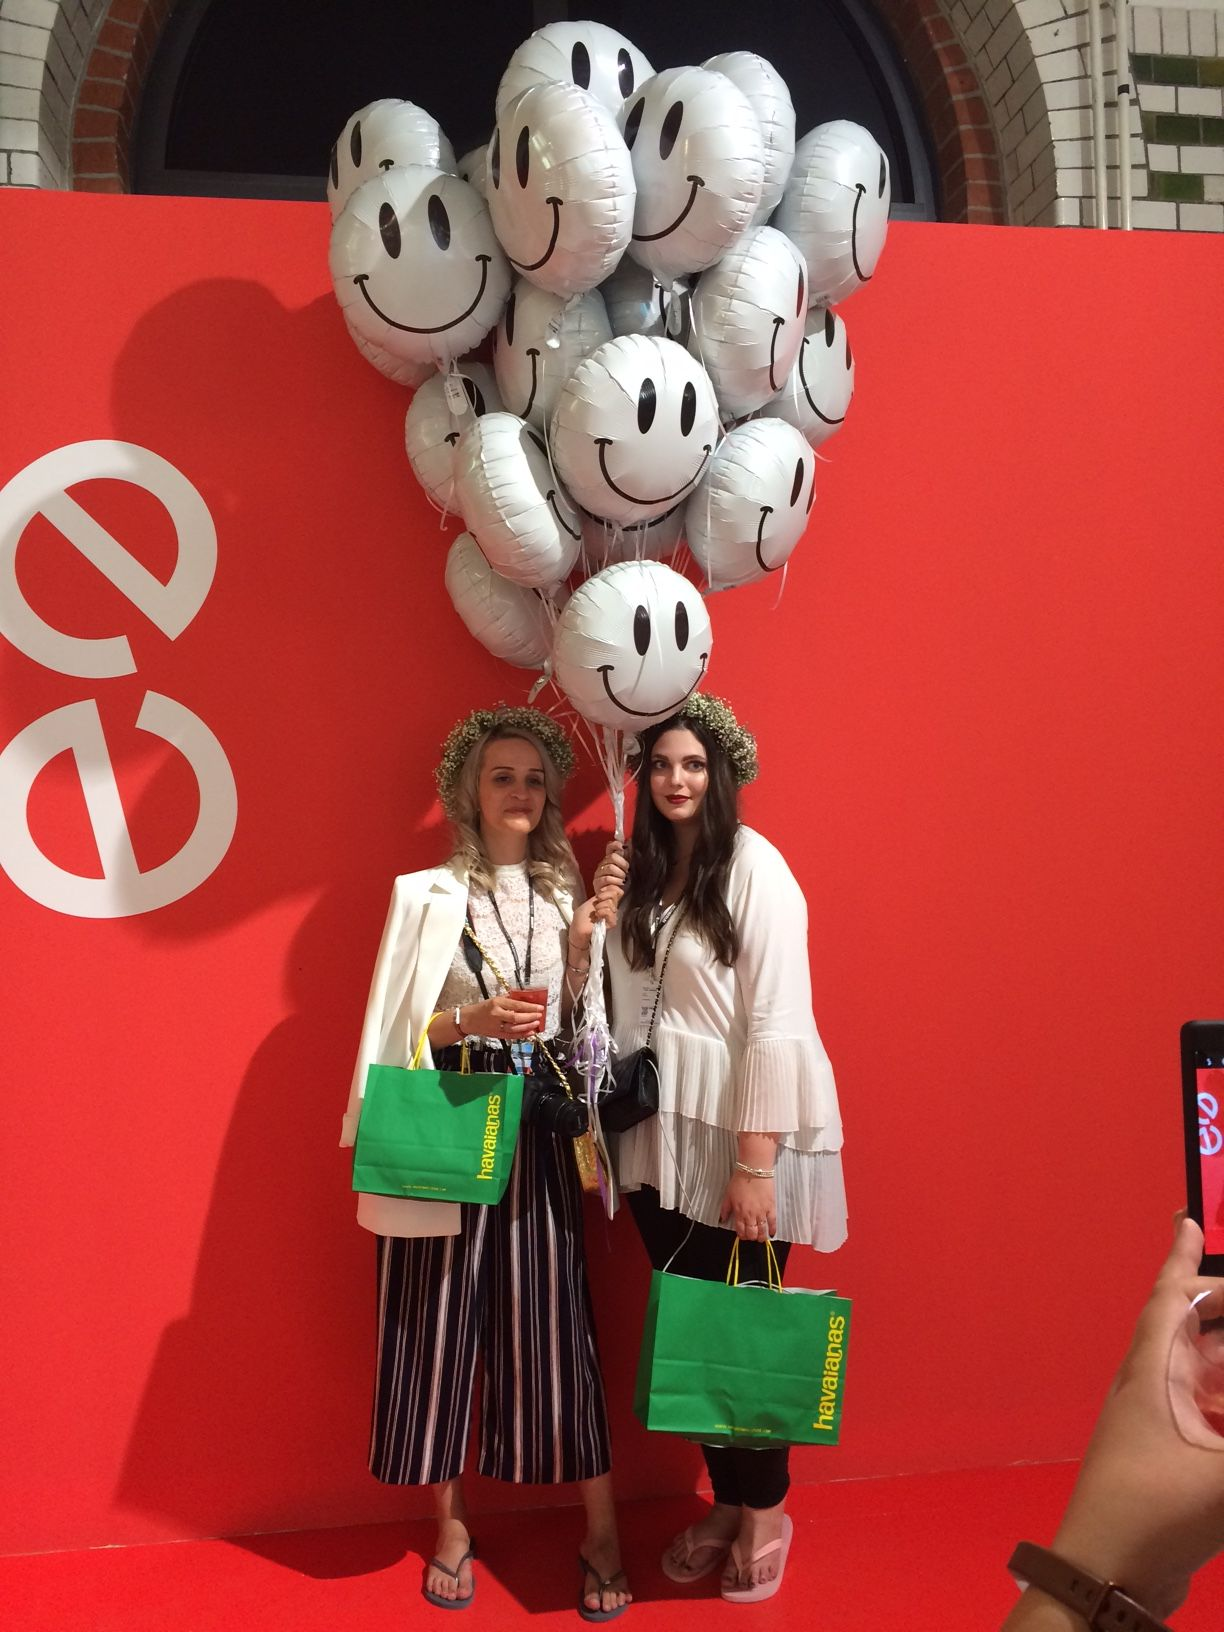 Visitors at Premium